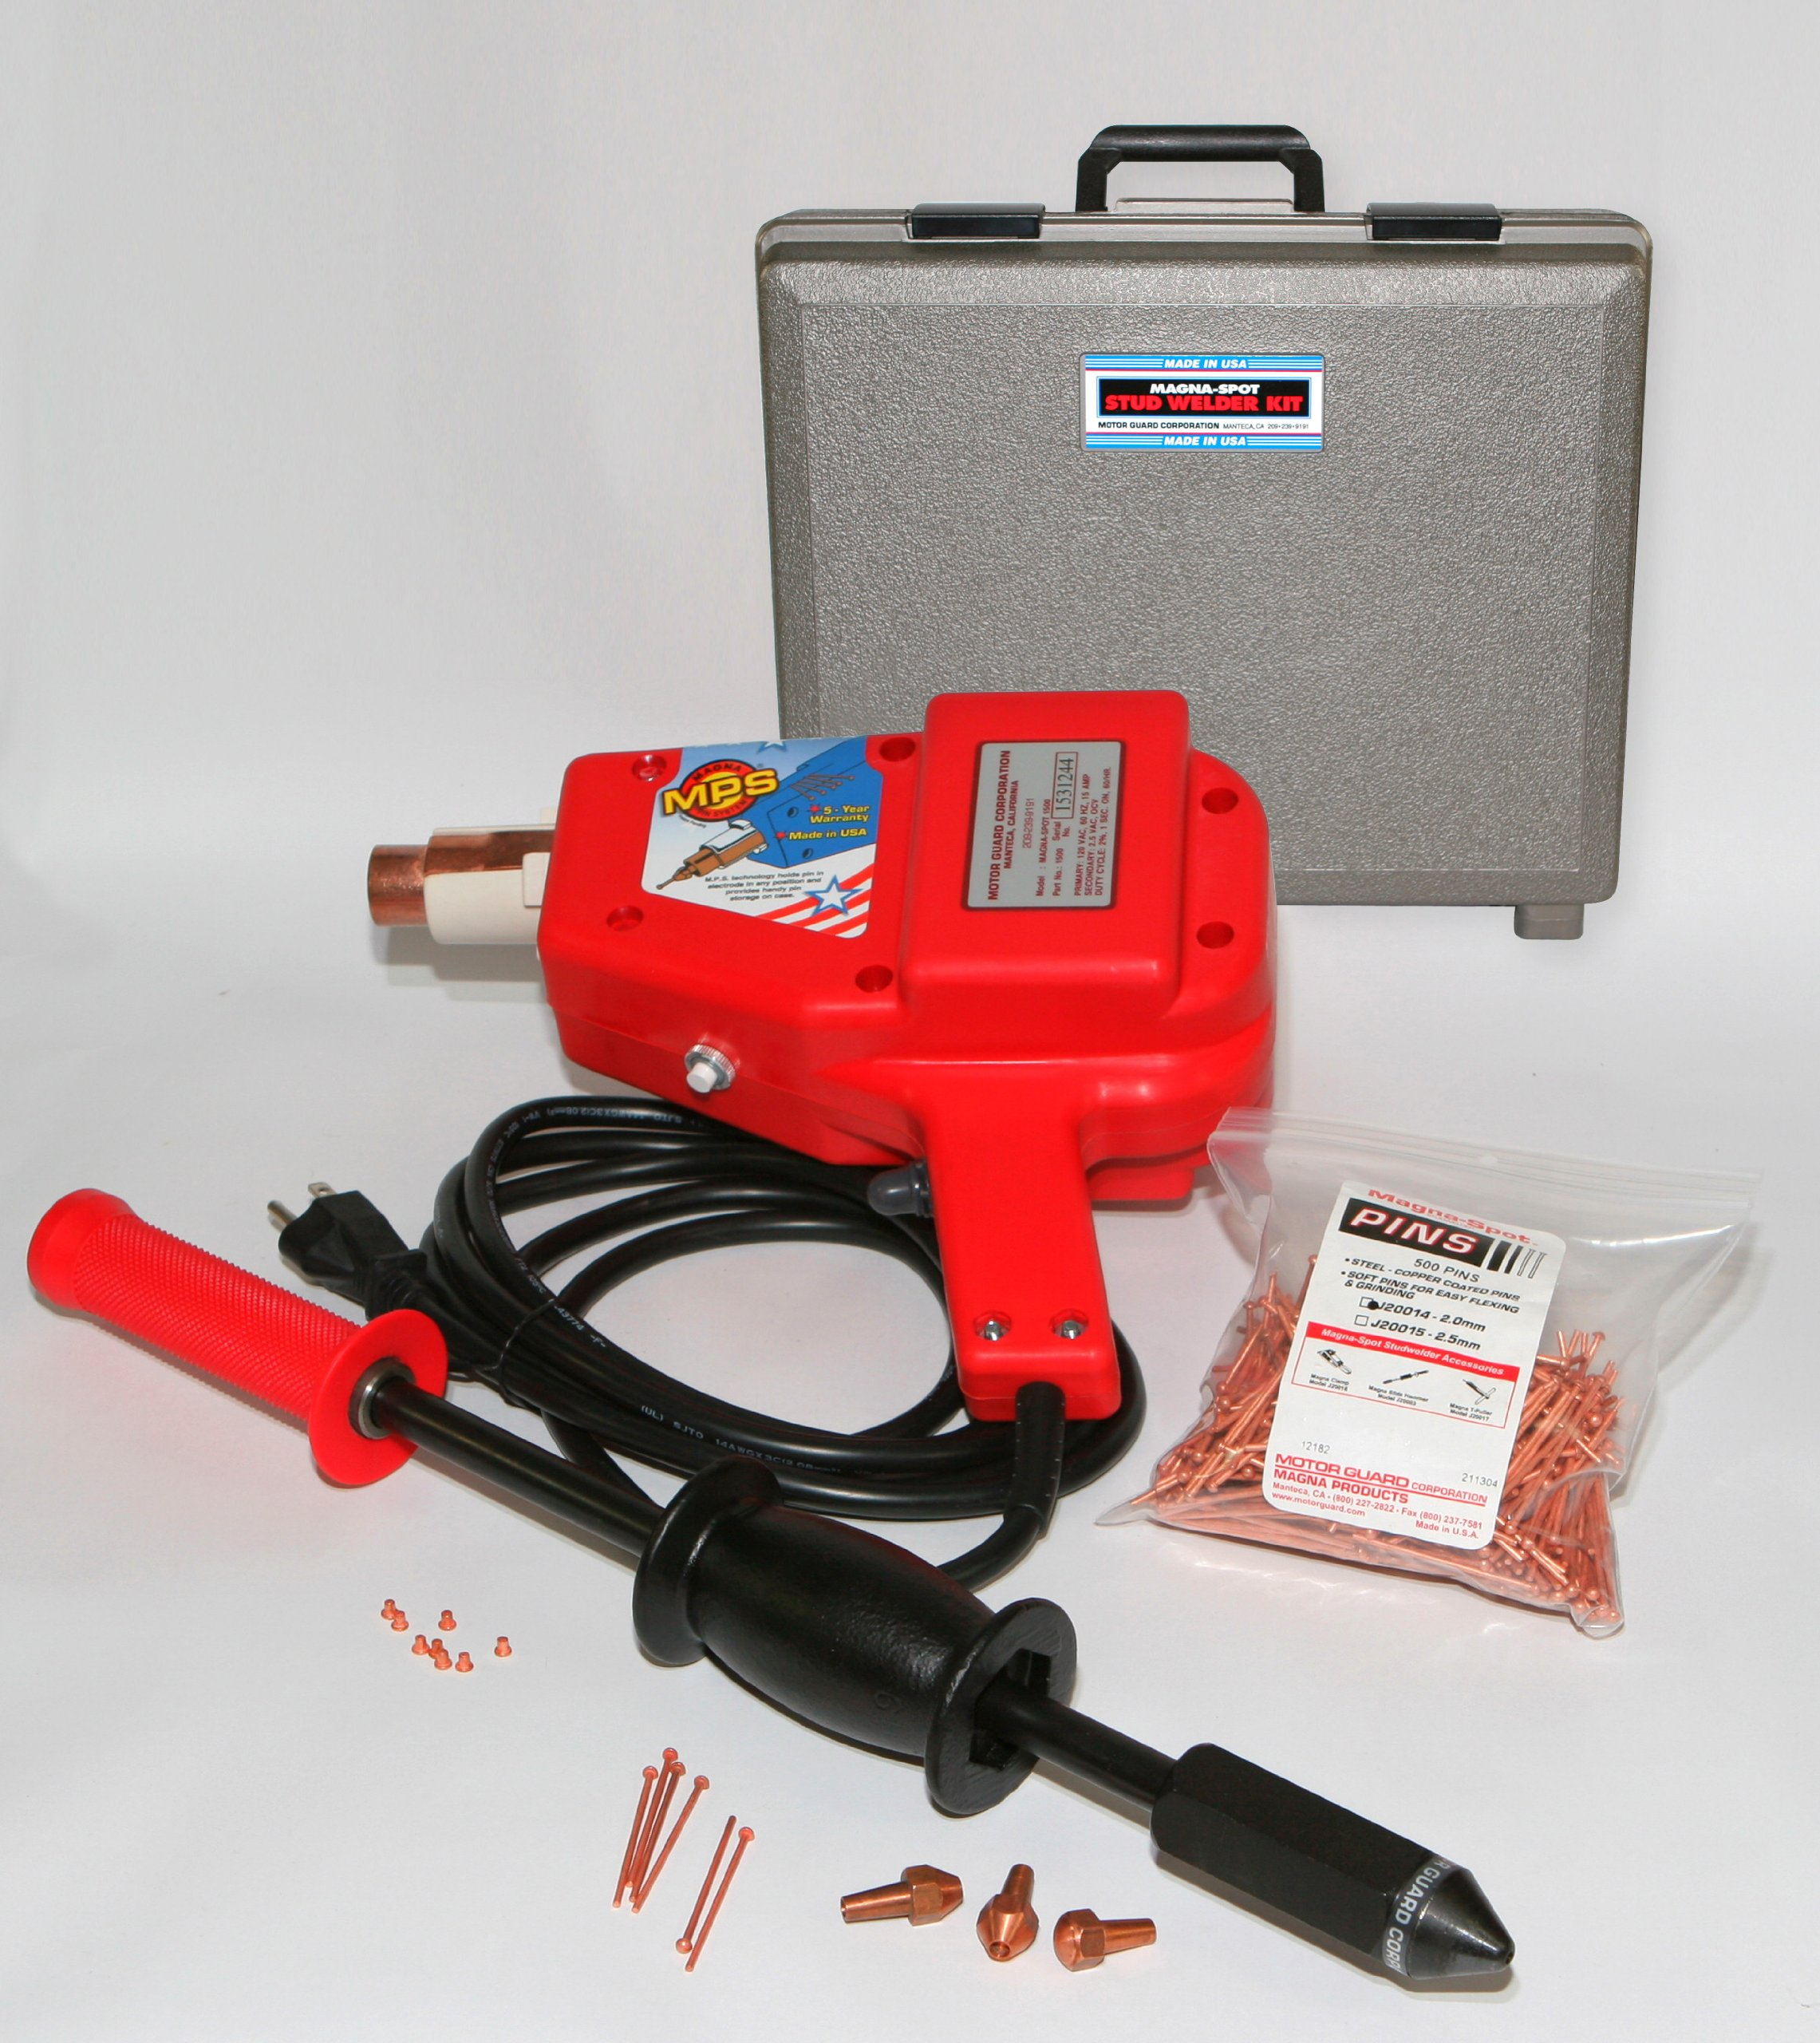 Motor Guard JO1500A 240 V Magna-Spot Professional Studwelder Kit by Motor Guard